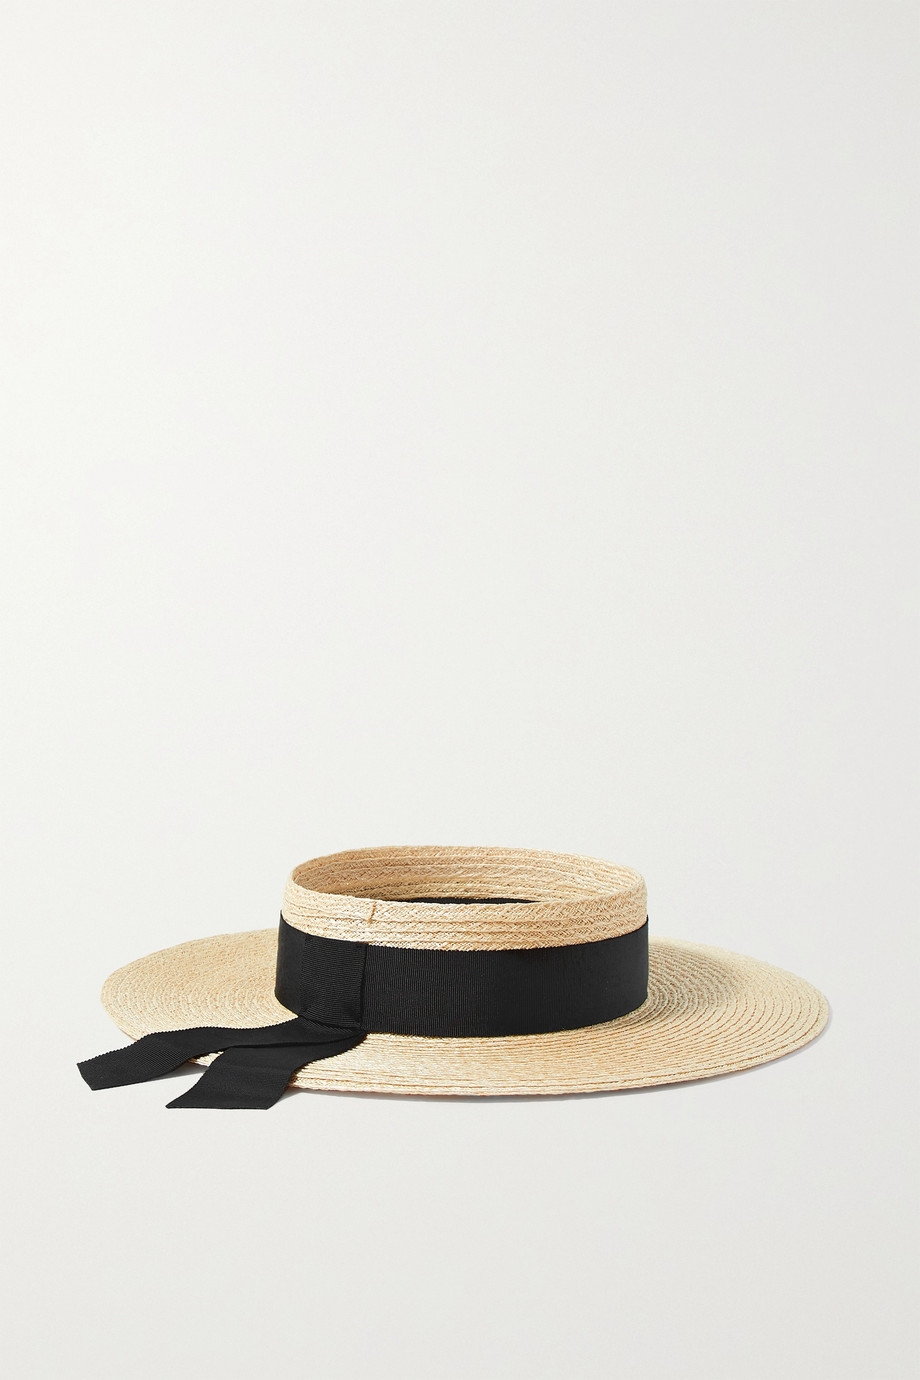 EUGENIA KIM Lettie grosgrain-trimmed hemp-blend visor